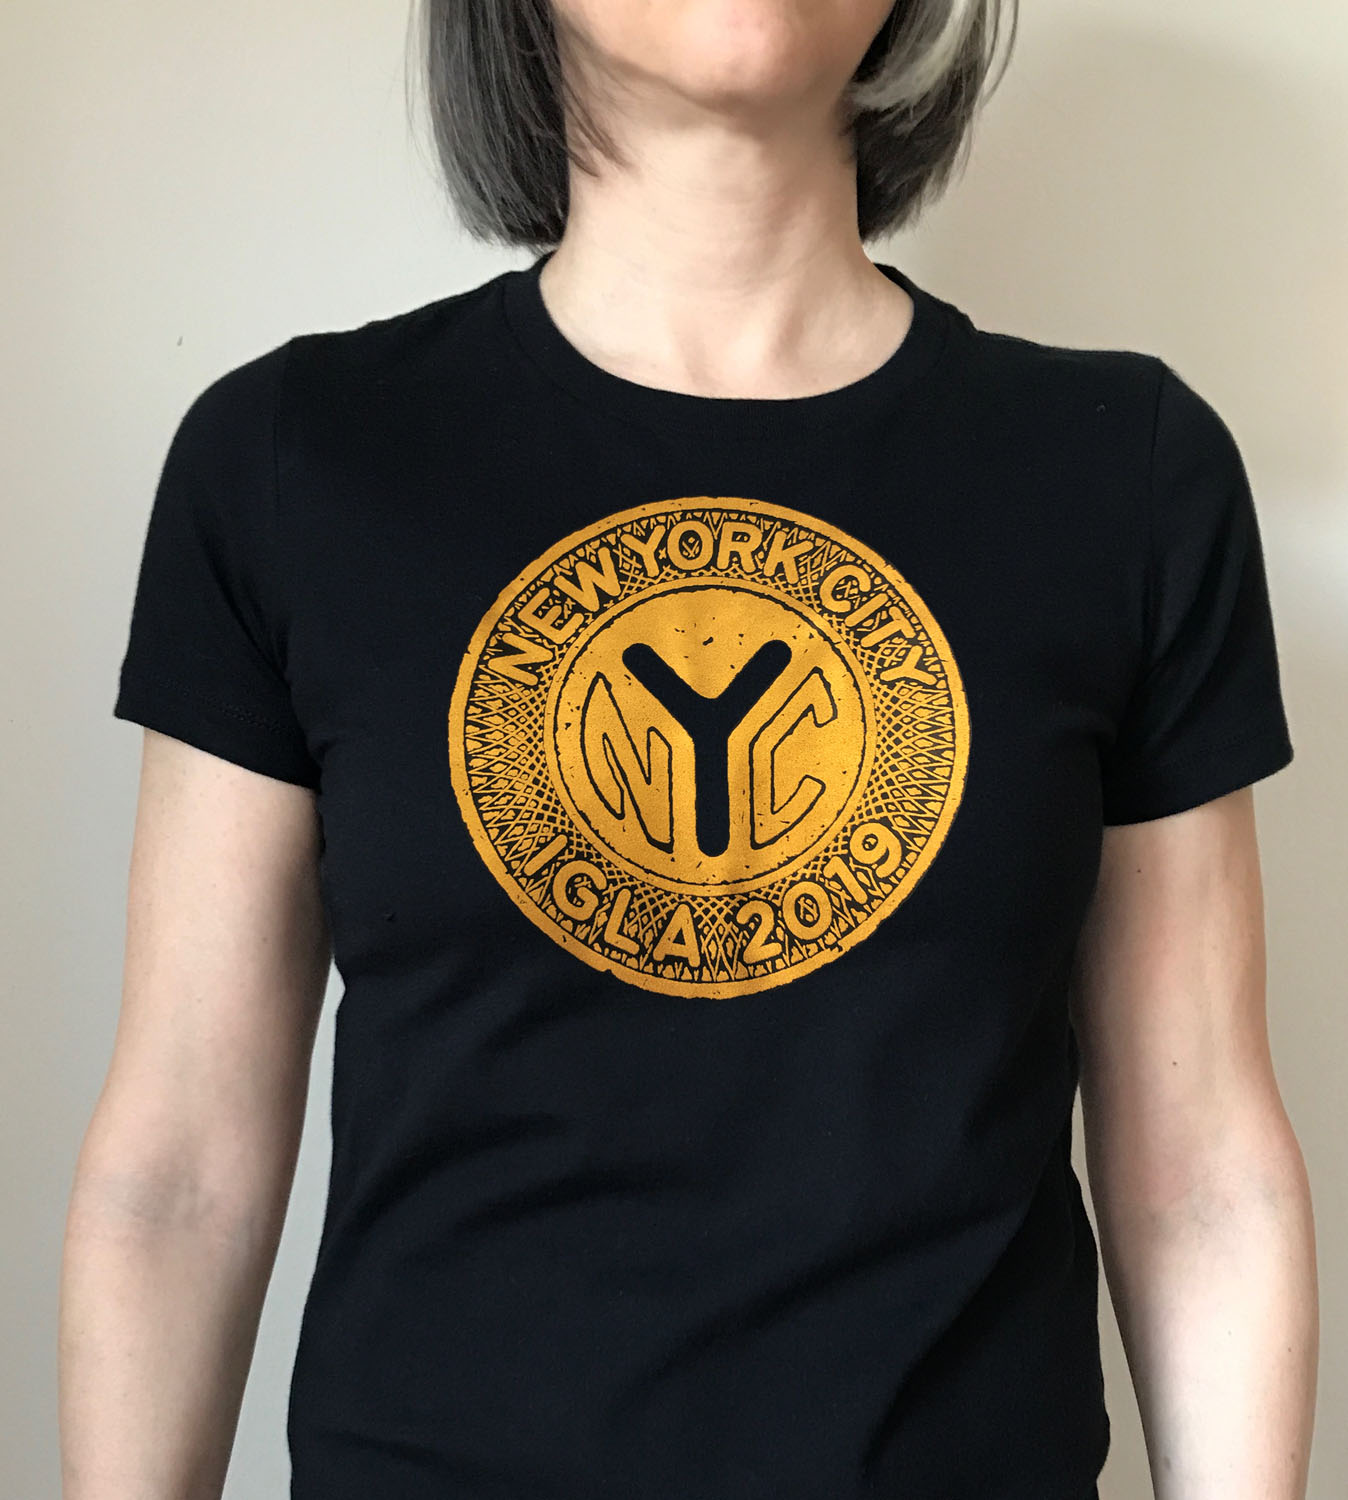 Women's black fitted t-shirt with vintage metallic gold token  $18